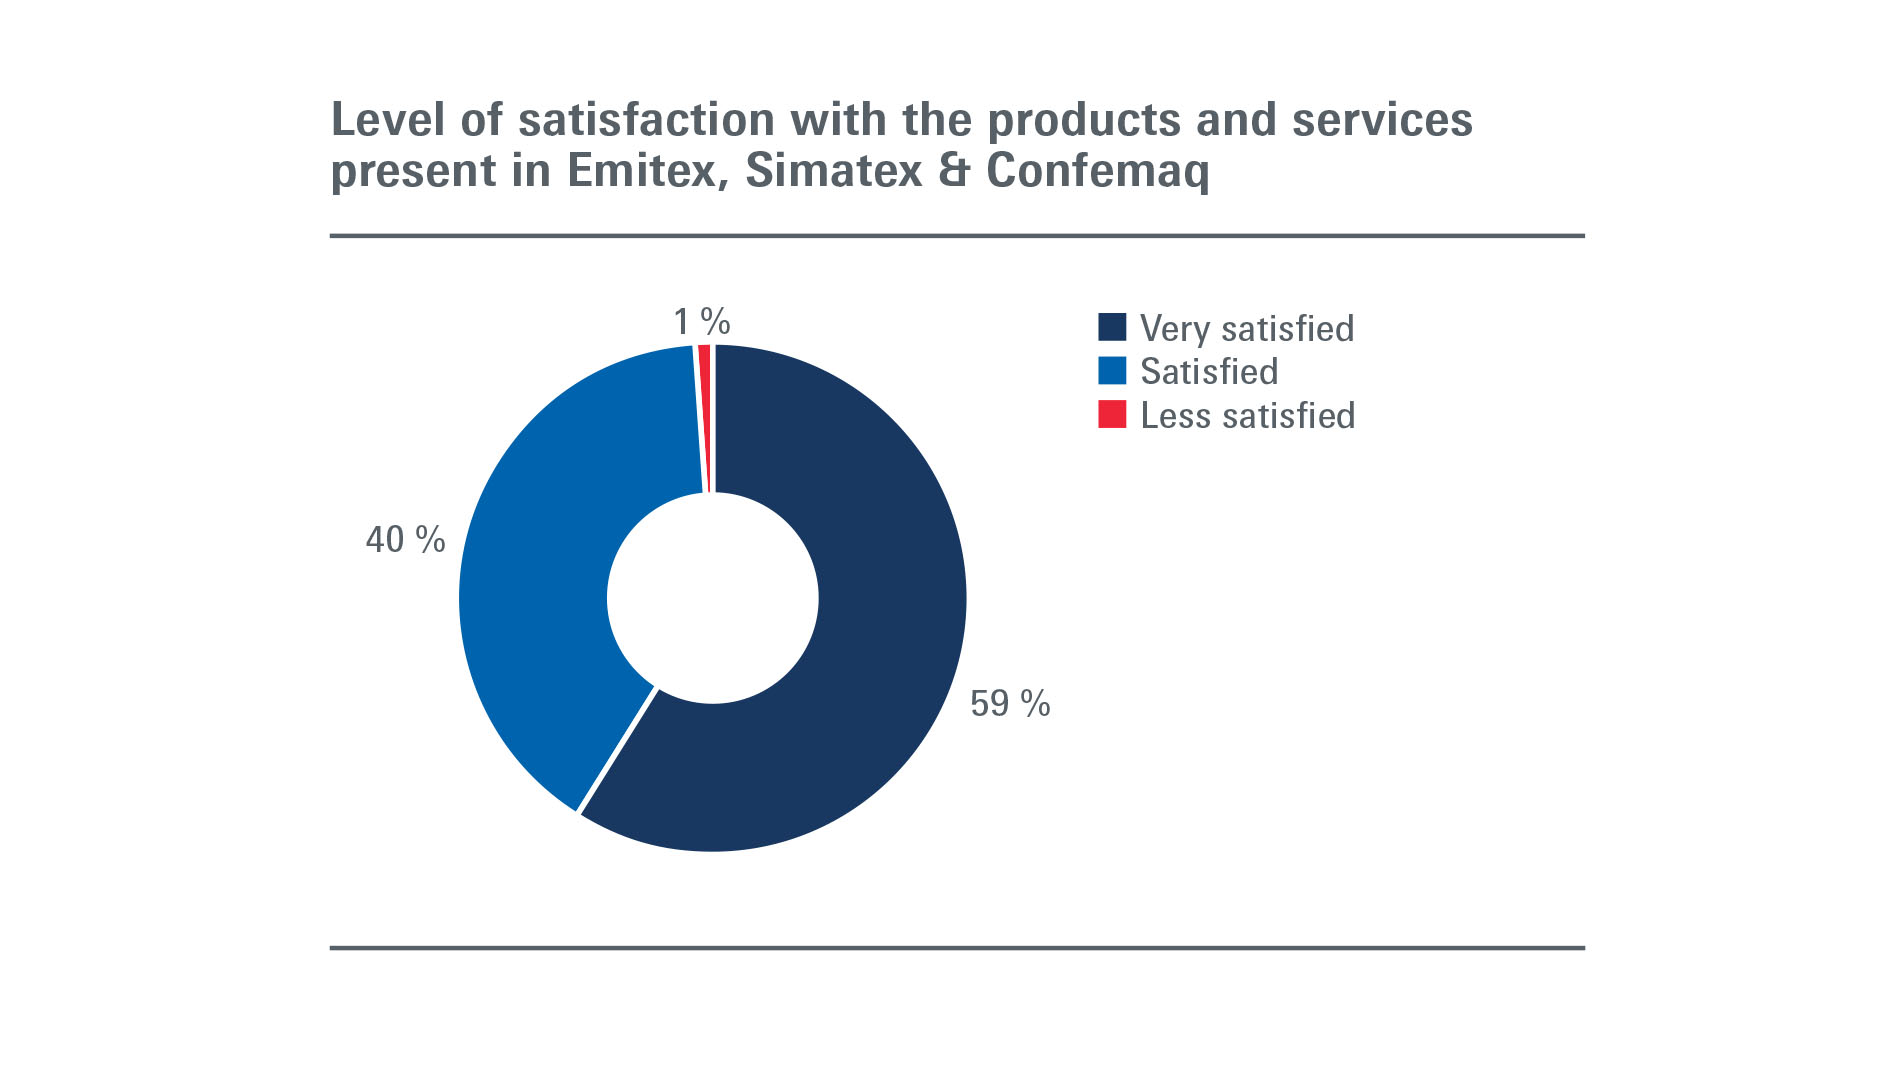 Emitex Simatex Confemaq: Visitors - Level of satisfaction